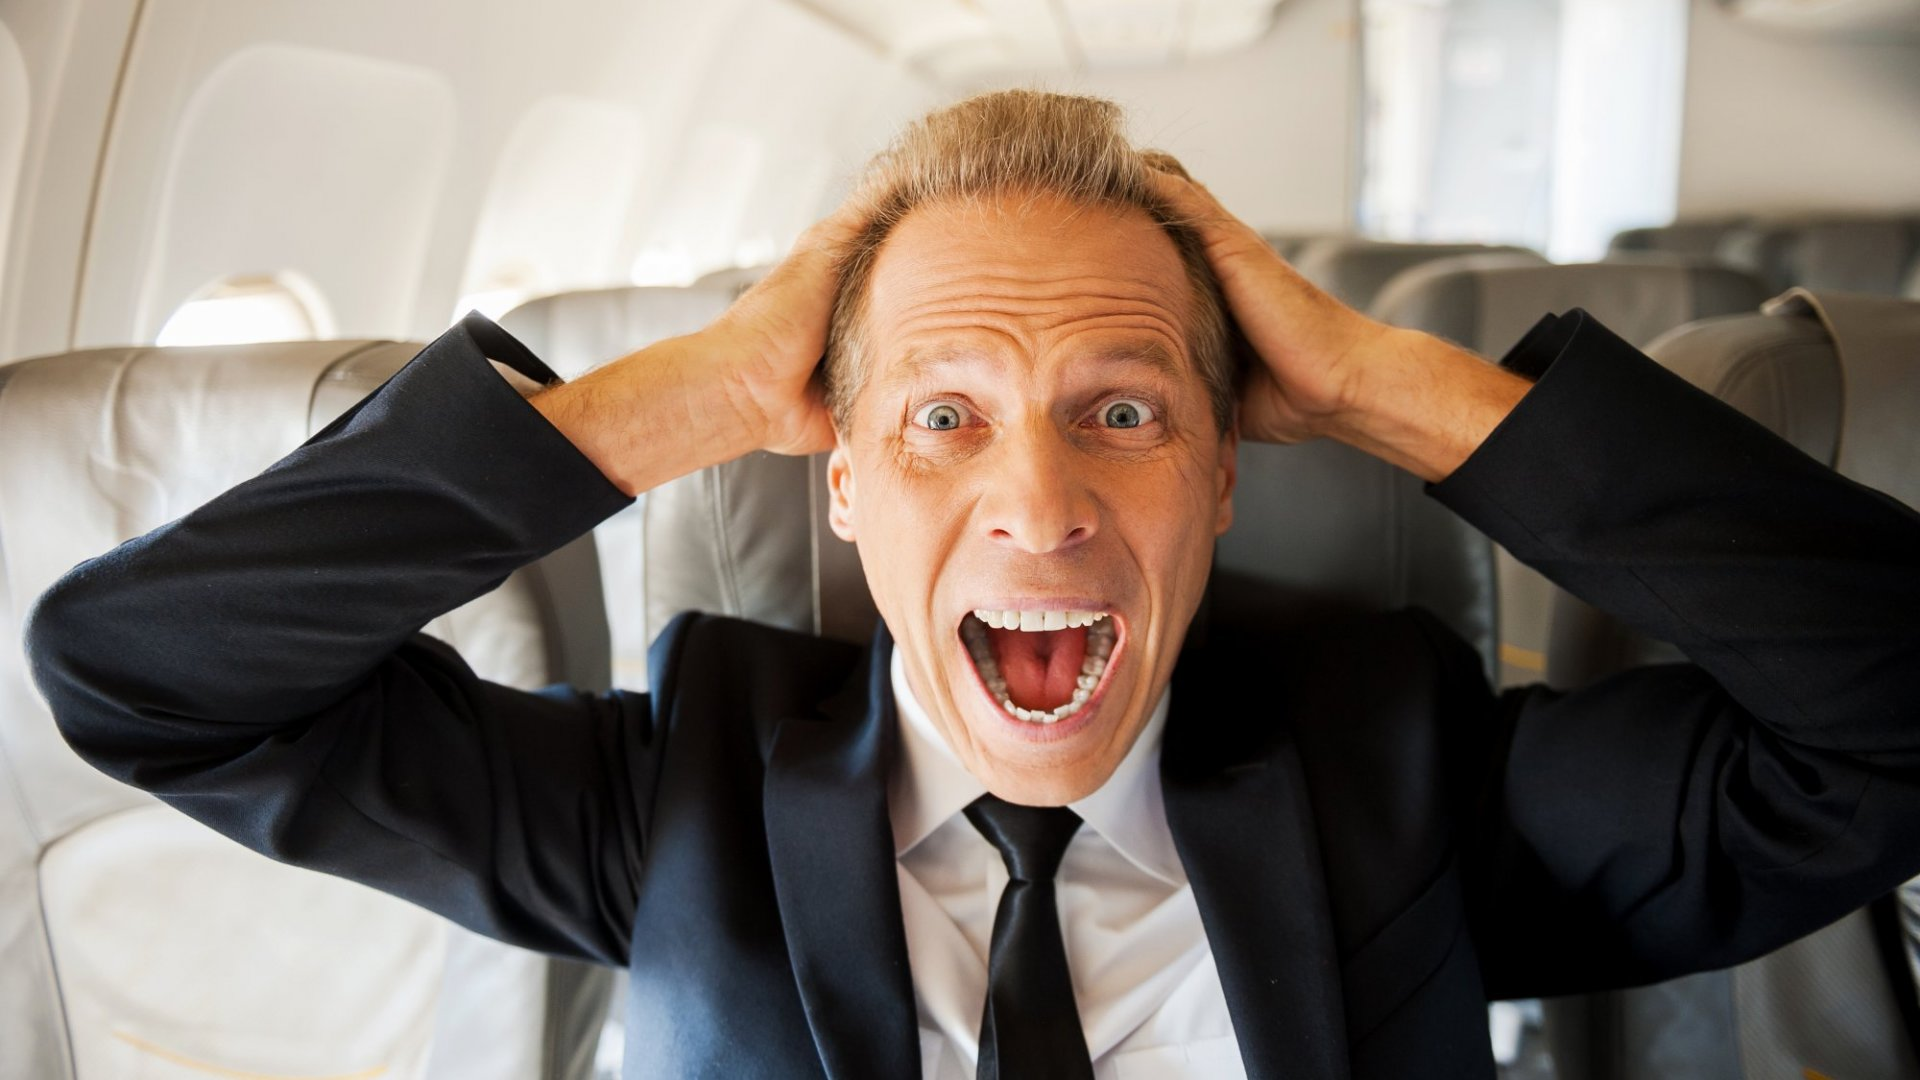 Traveling for business is far more stressful than people realize. But there are a few tricks that seasoned travelers have figured out to make it that little bit easier.